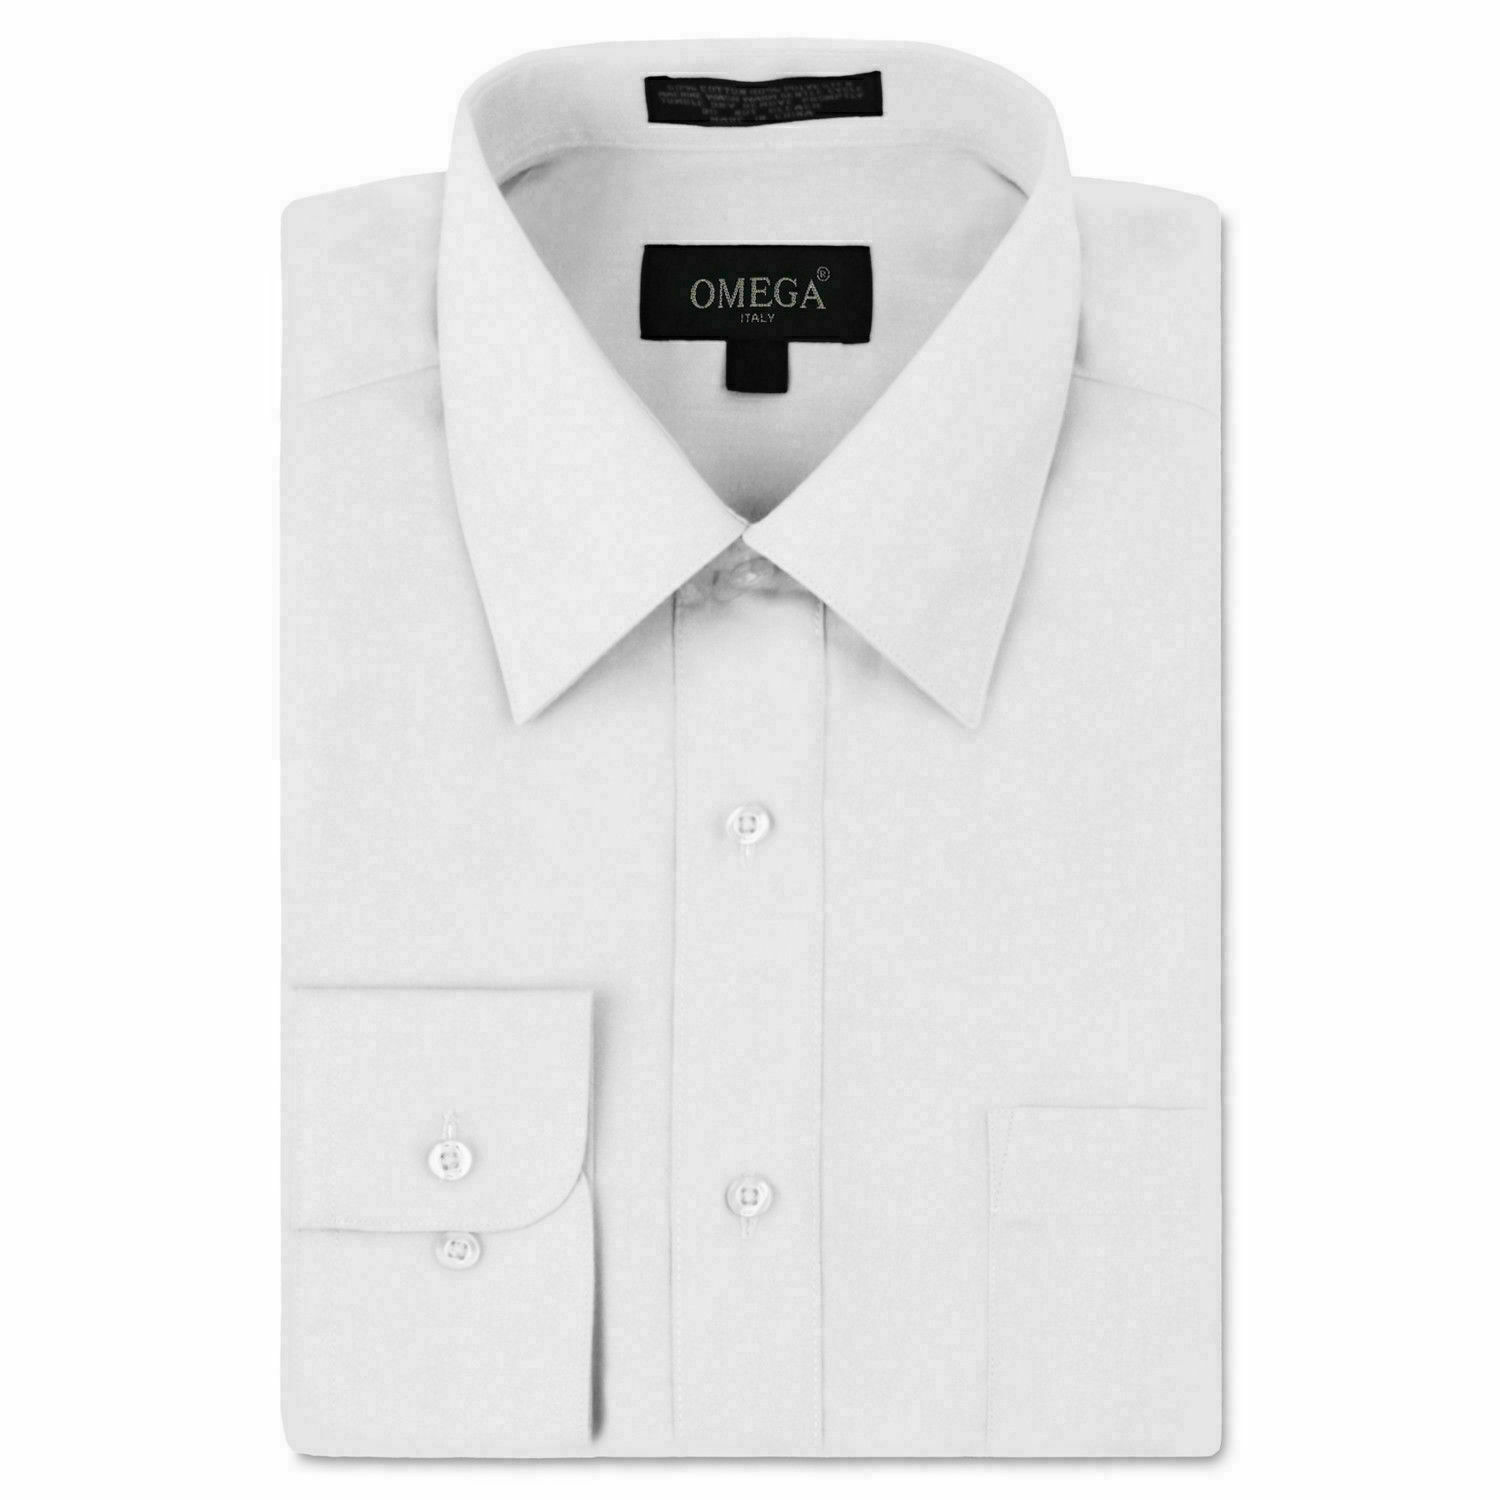 Omega Italy White Classic Fit Standard Cuff Solid Dress Shirt - XL